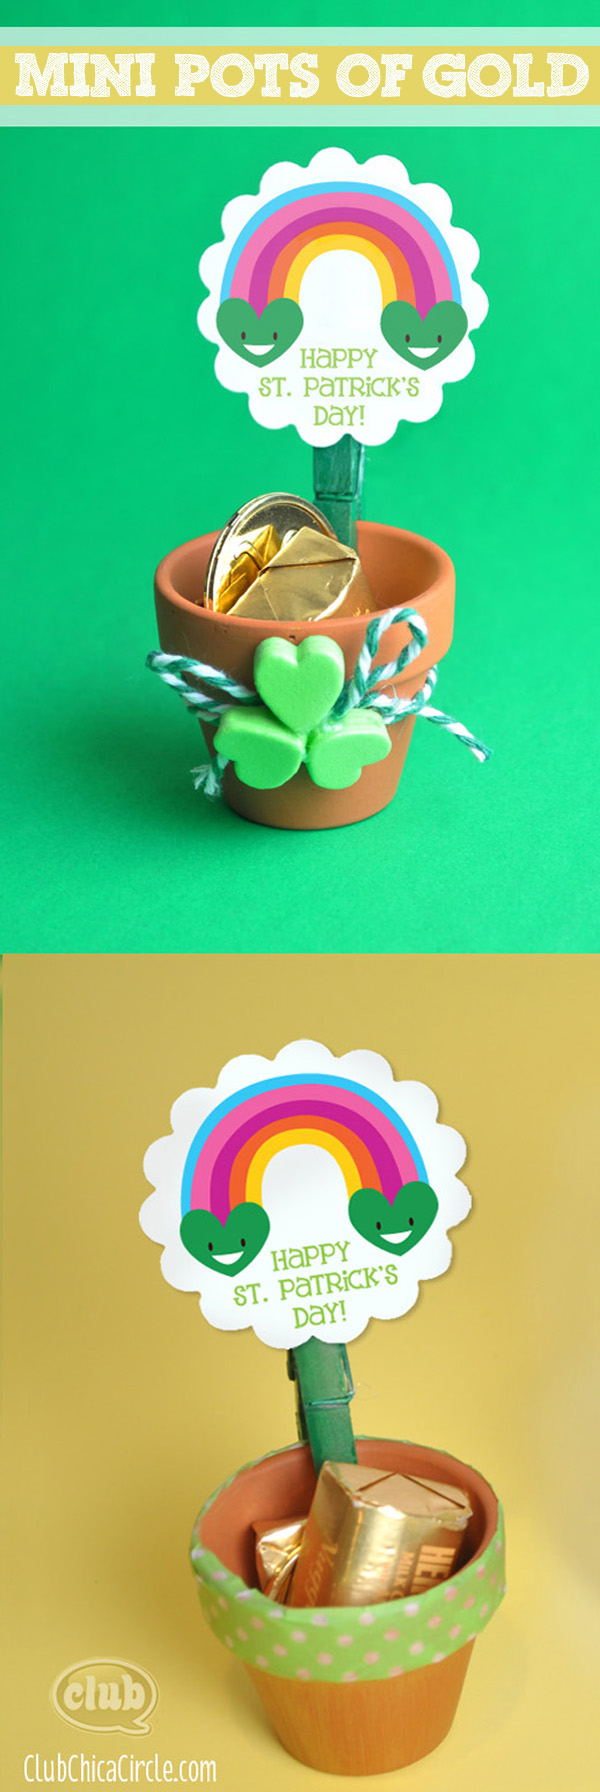 Mini Pot of Gold craft idea with Smiling Rainbow Printable @clubchicacircle 2